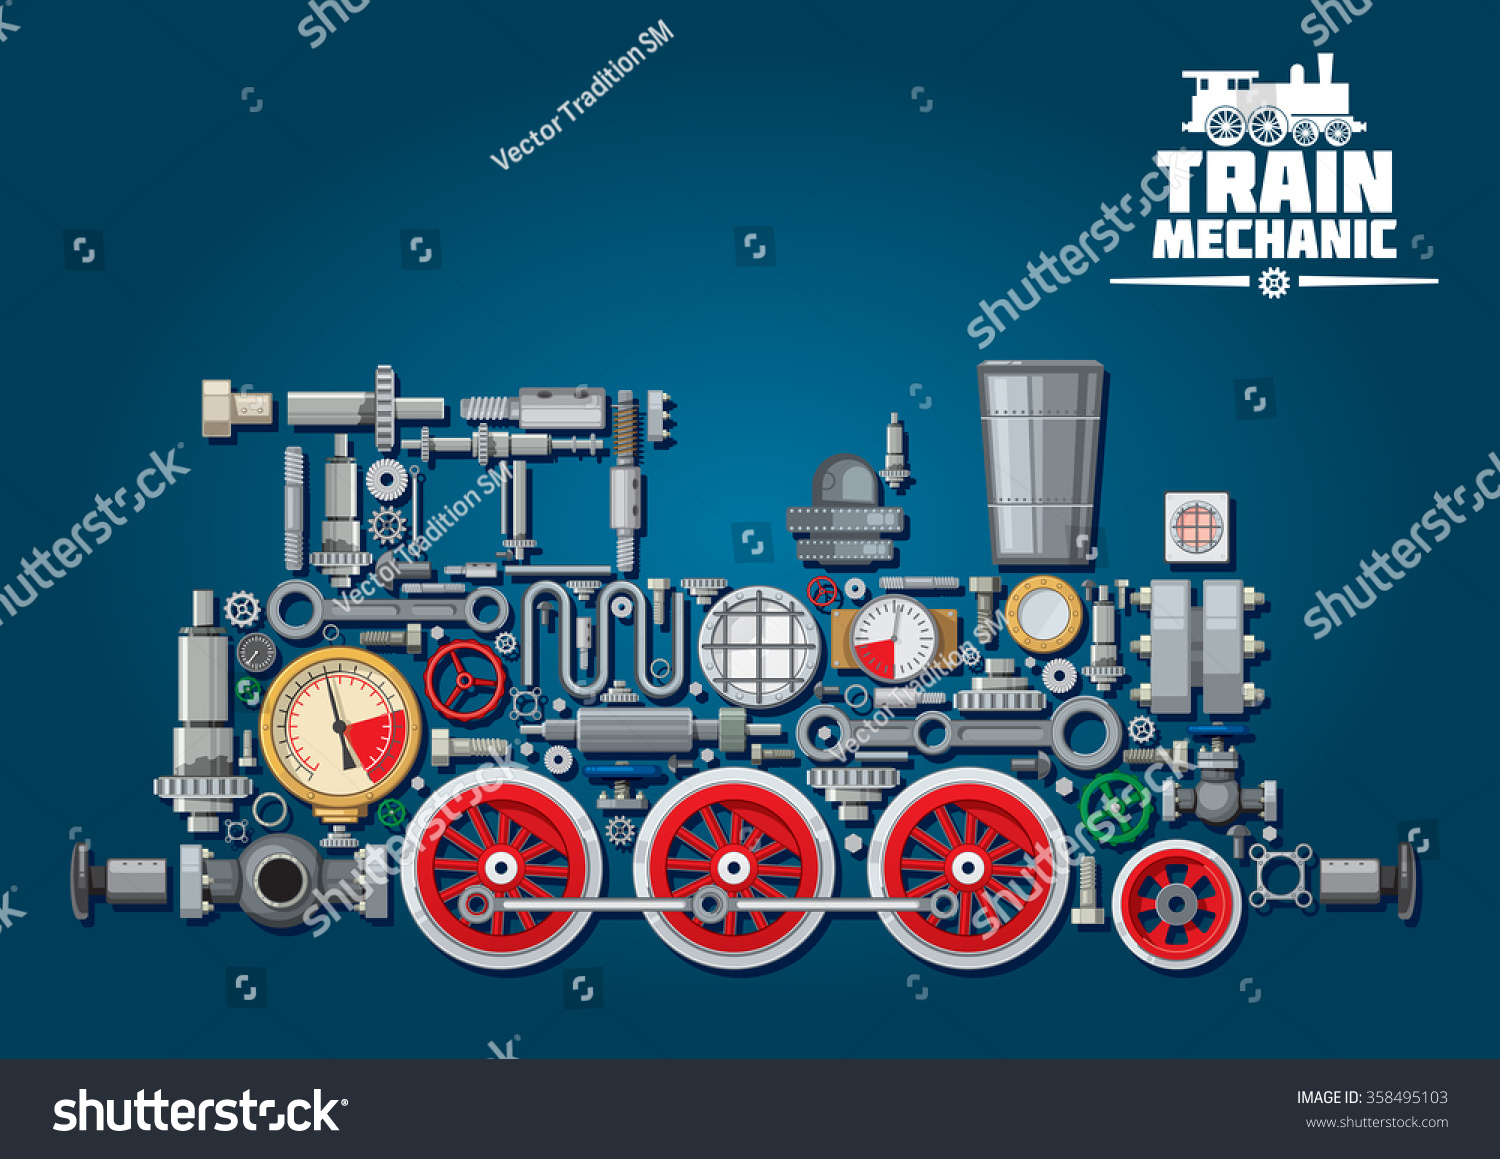 Steam Locomotive Train Made Mechanical Parts Stock Vector